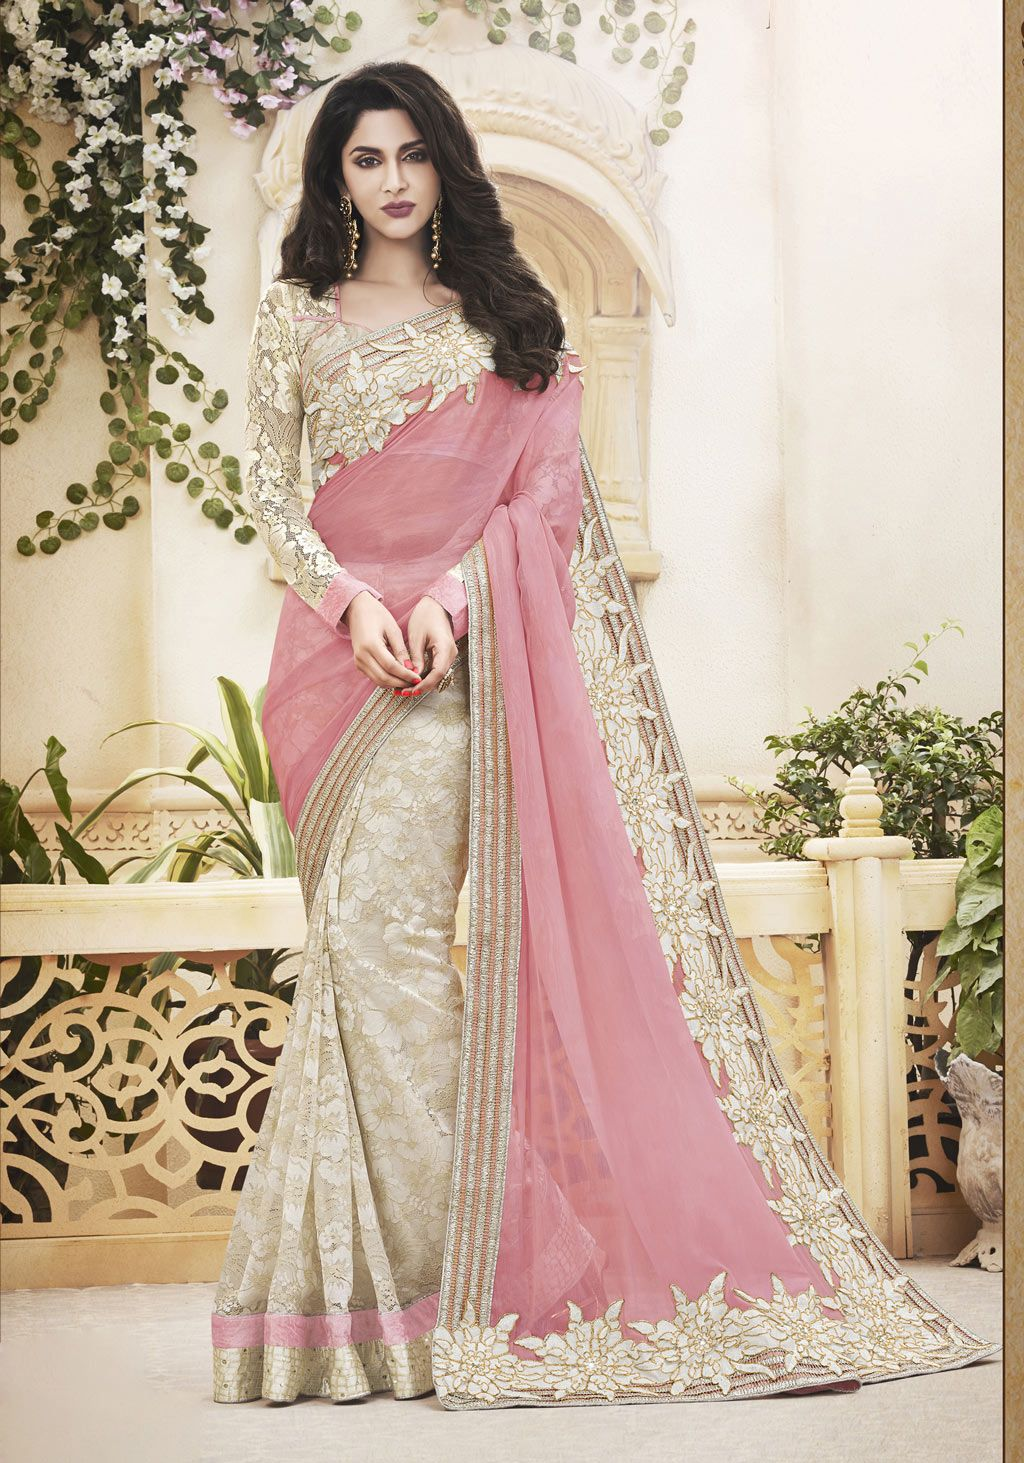 Pink Chiffon Half and Half Saree With Blouse 61853 | Saree ...